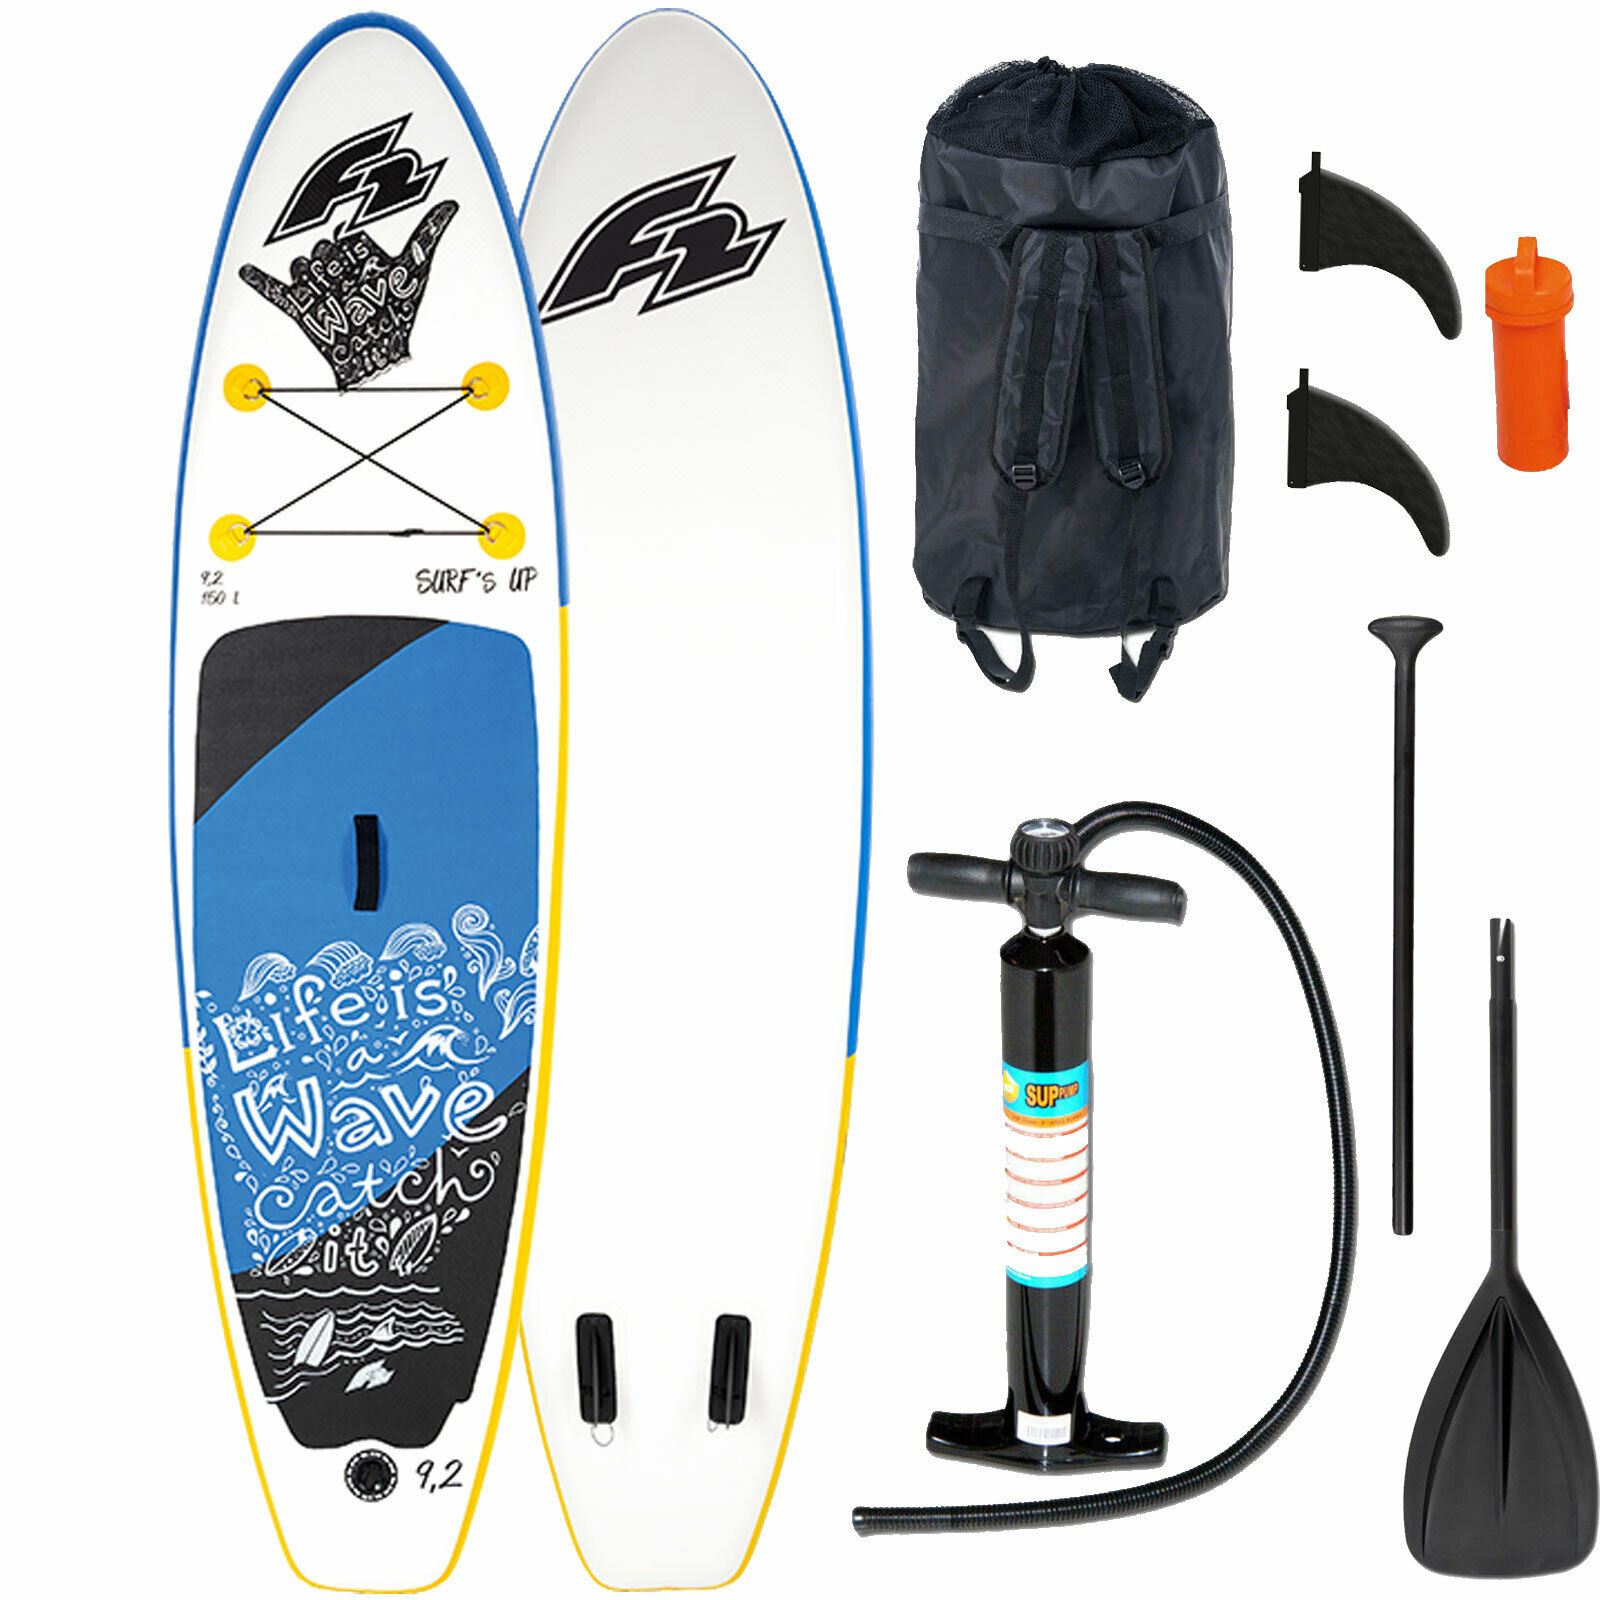 F2 Gonfiabile Surfs Up Bambini Ste Paddle Tavola Set ISup Paddletavola